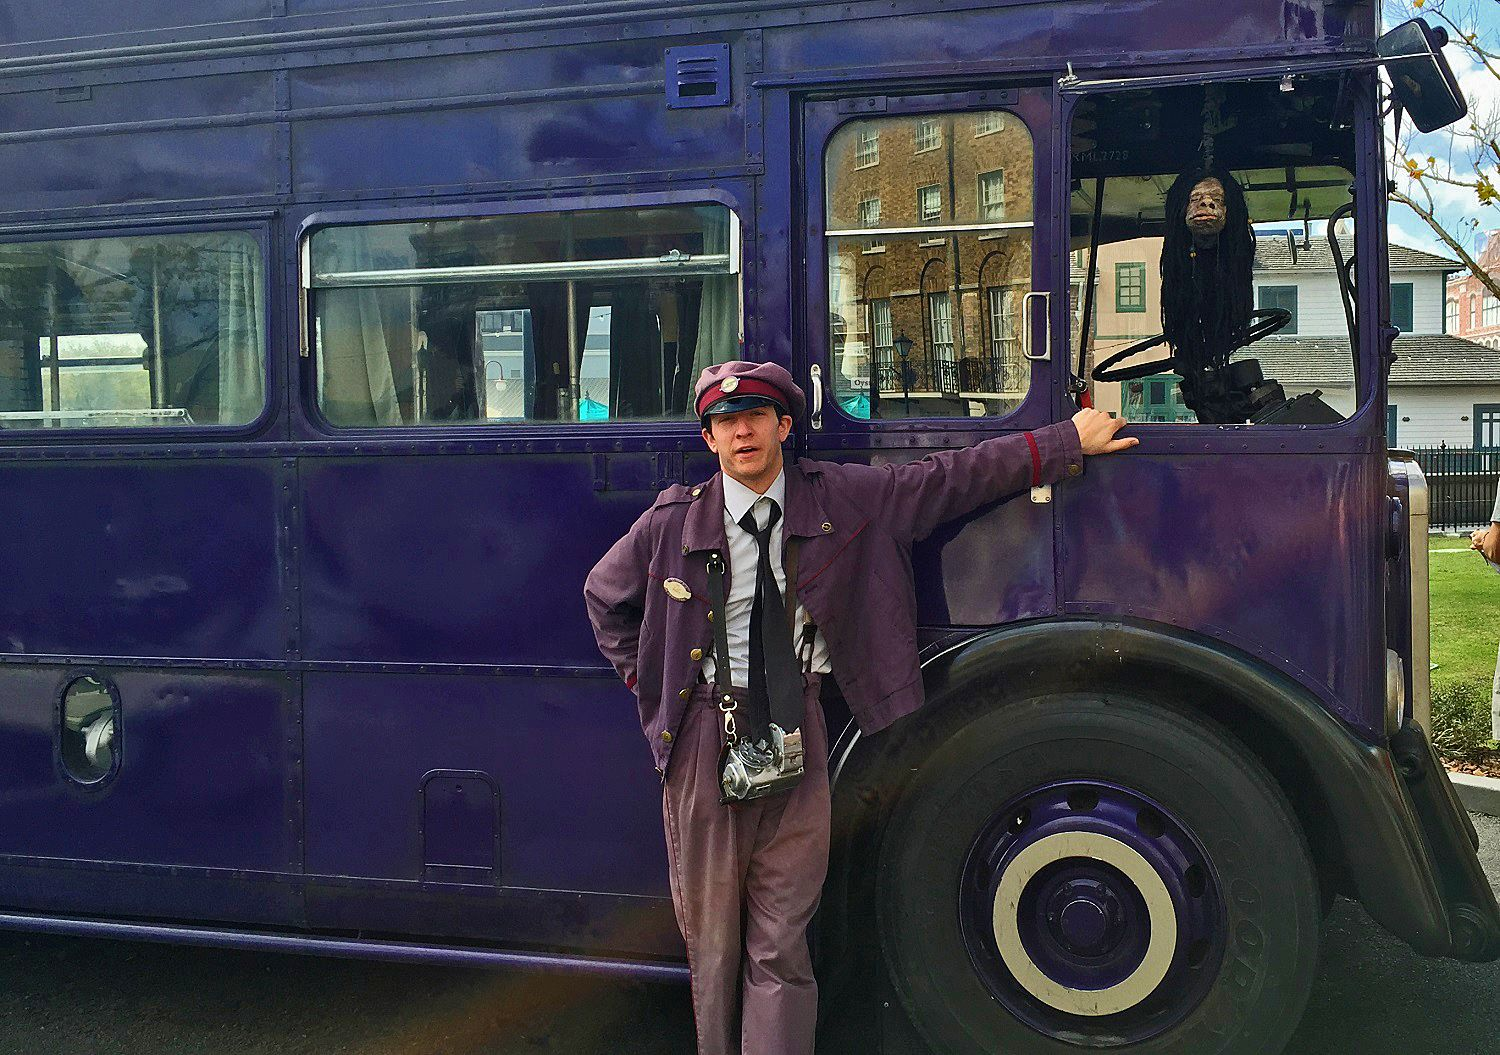 Knight Bus and Driver near Diagon Alley - edited.jpg